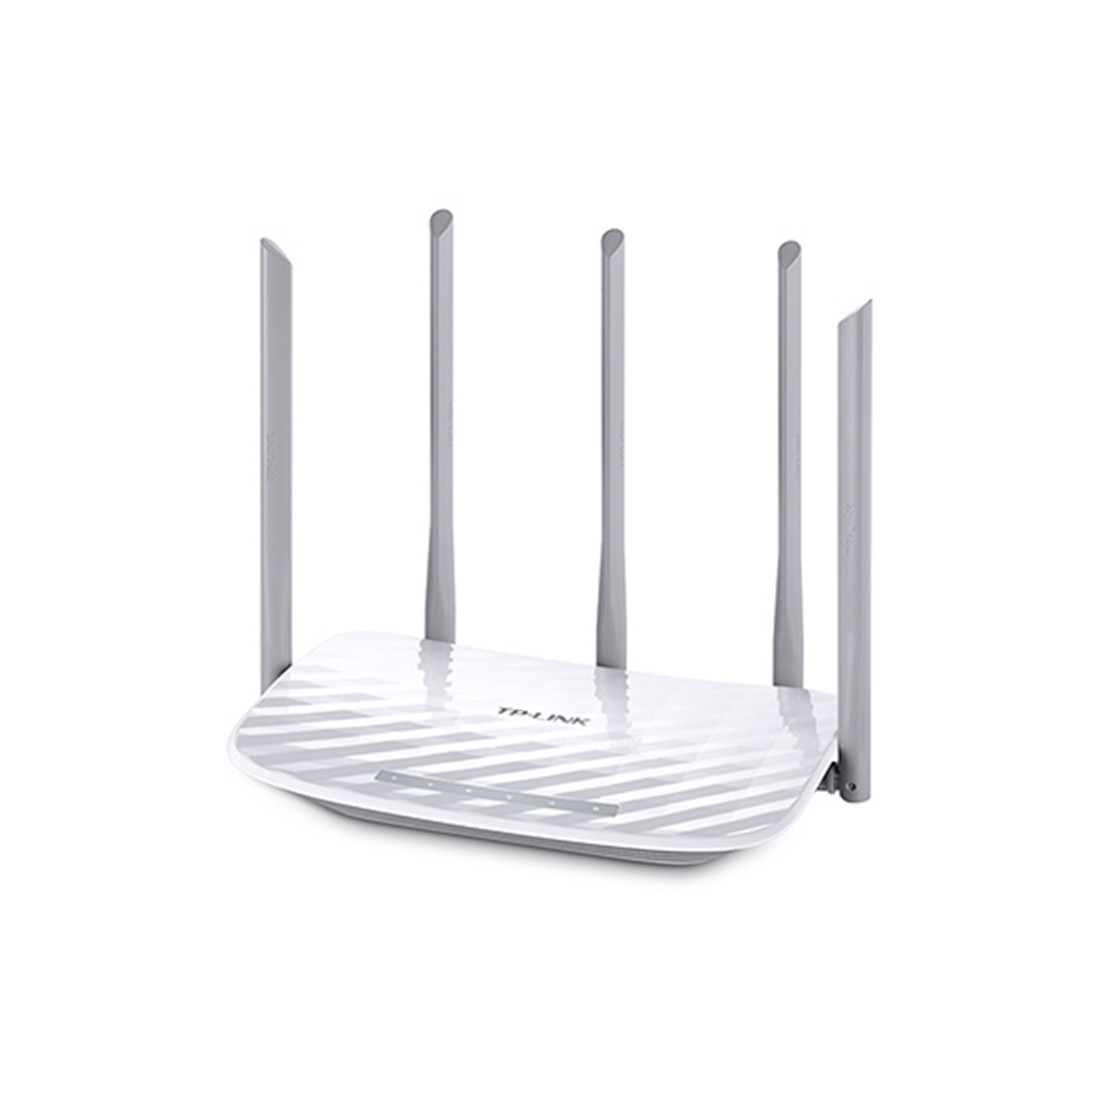 Маршрутизатор TP-Link Archer C60, 1350М